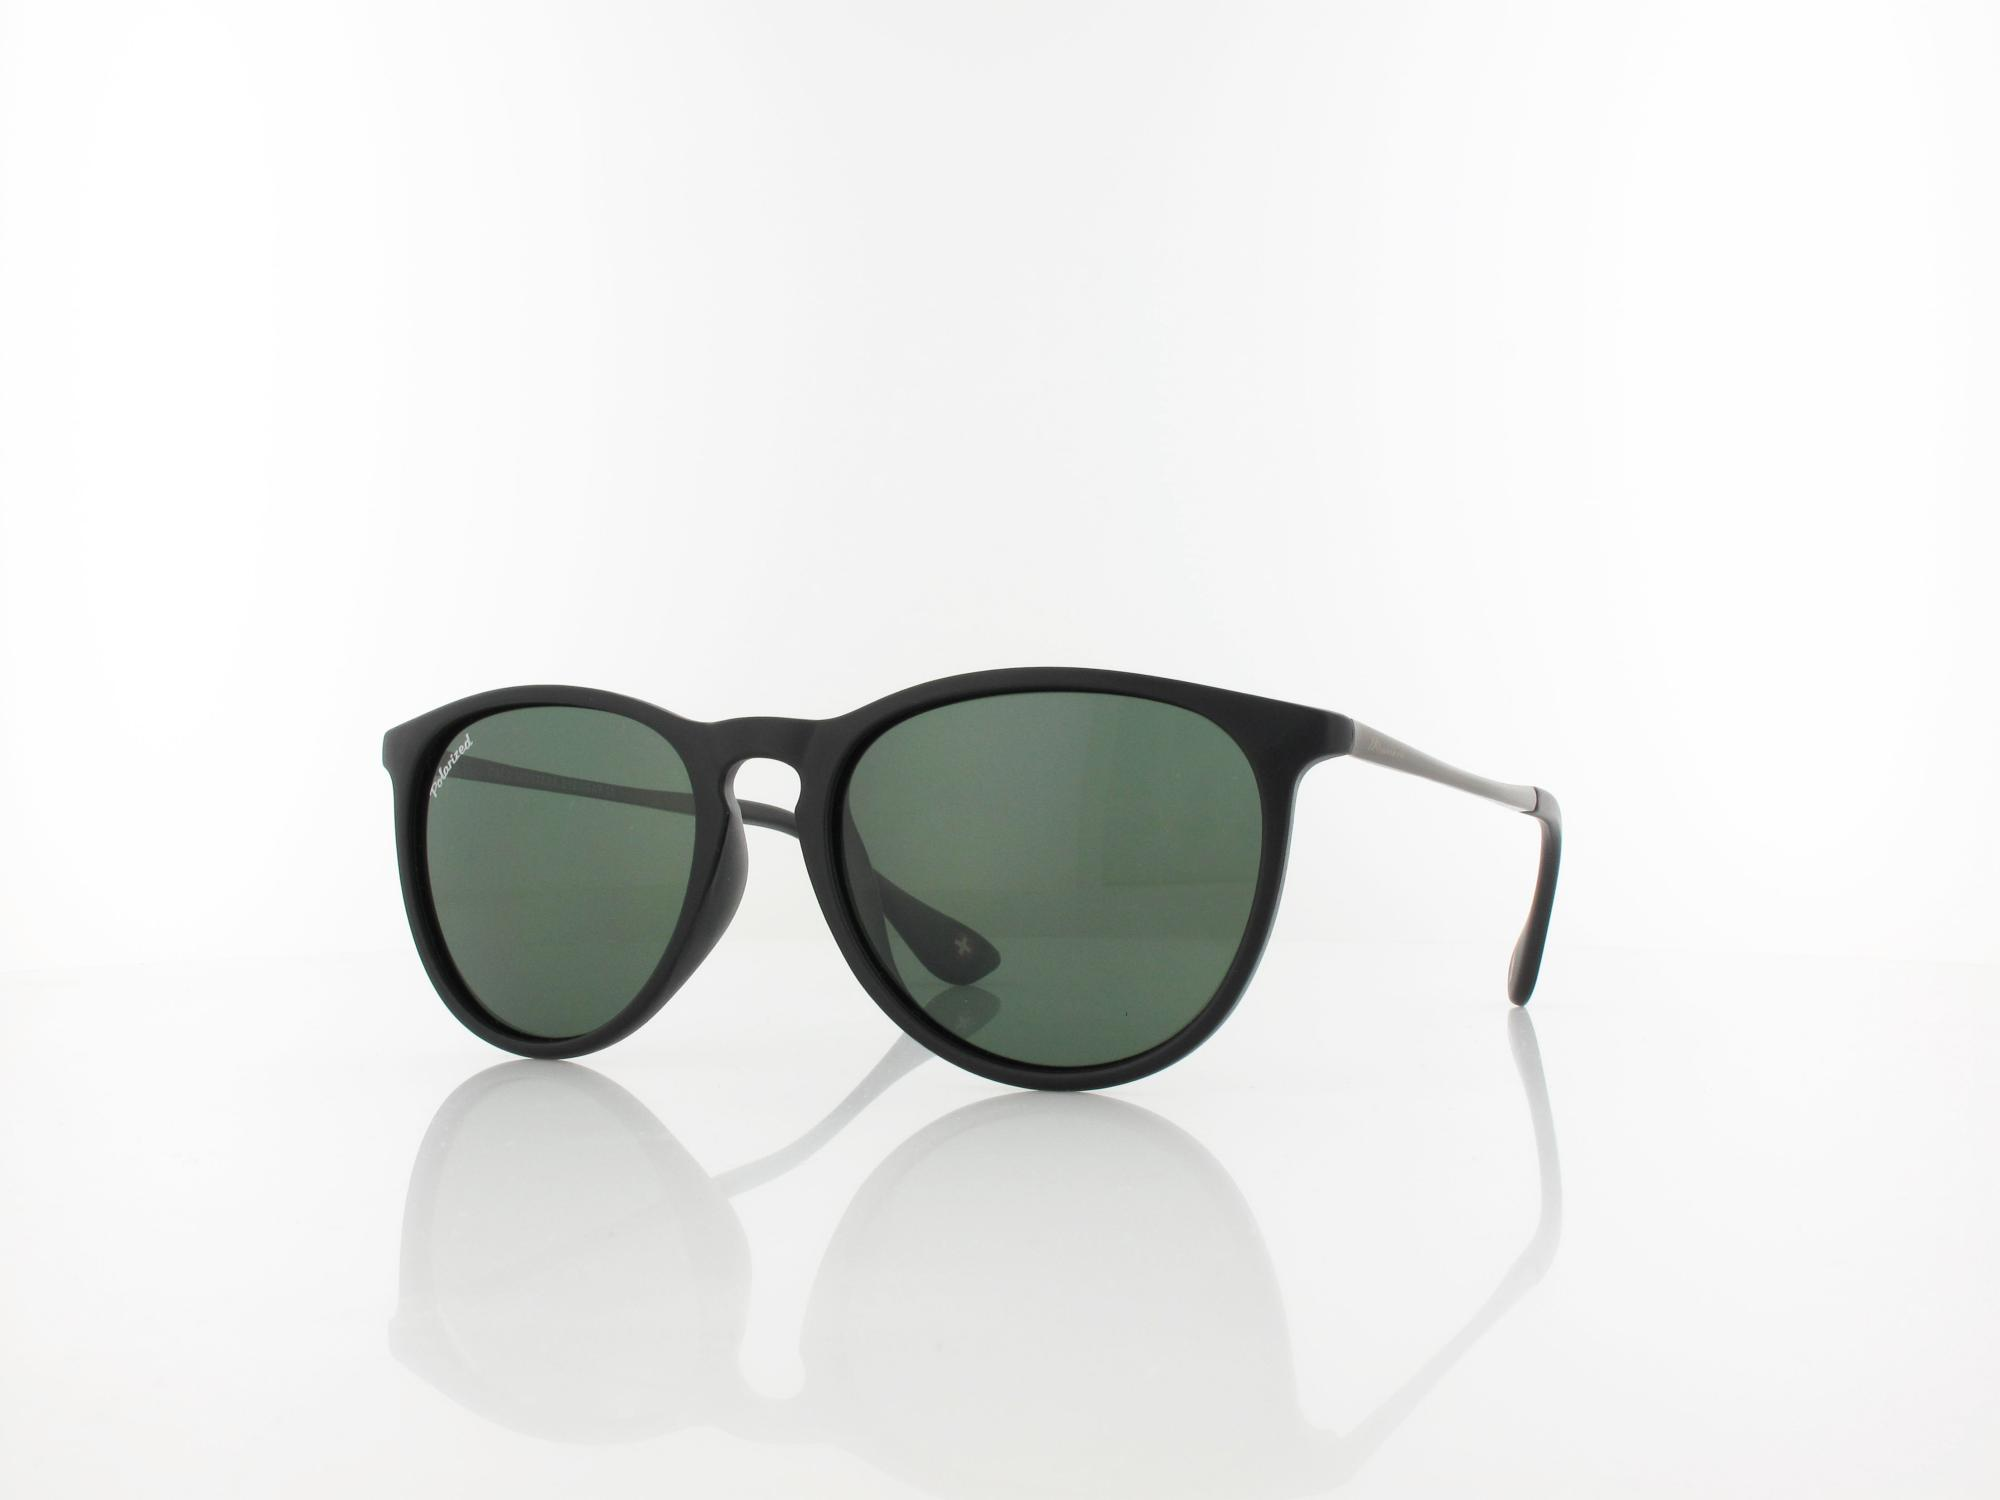 Brilando | MP24 A 53 | black / green polarized